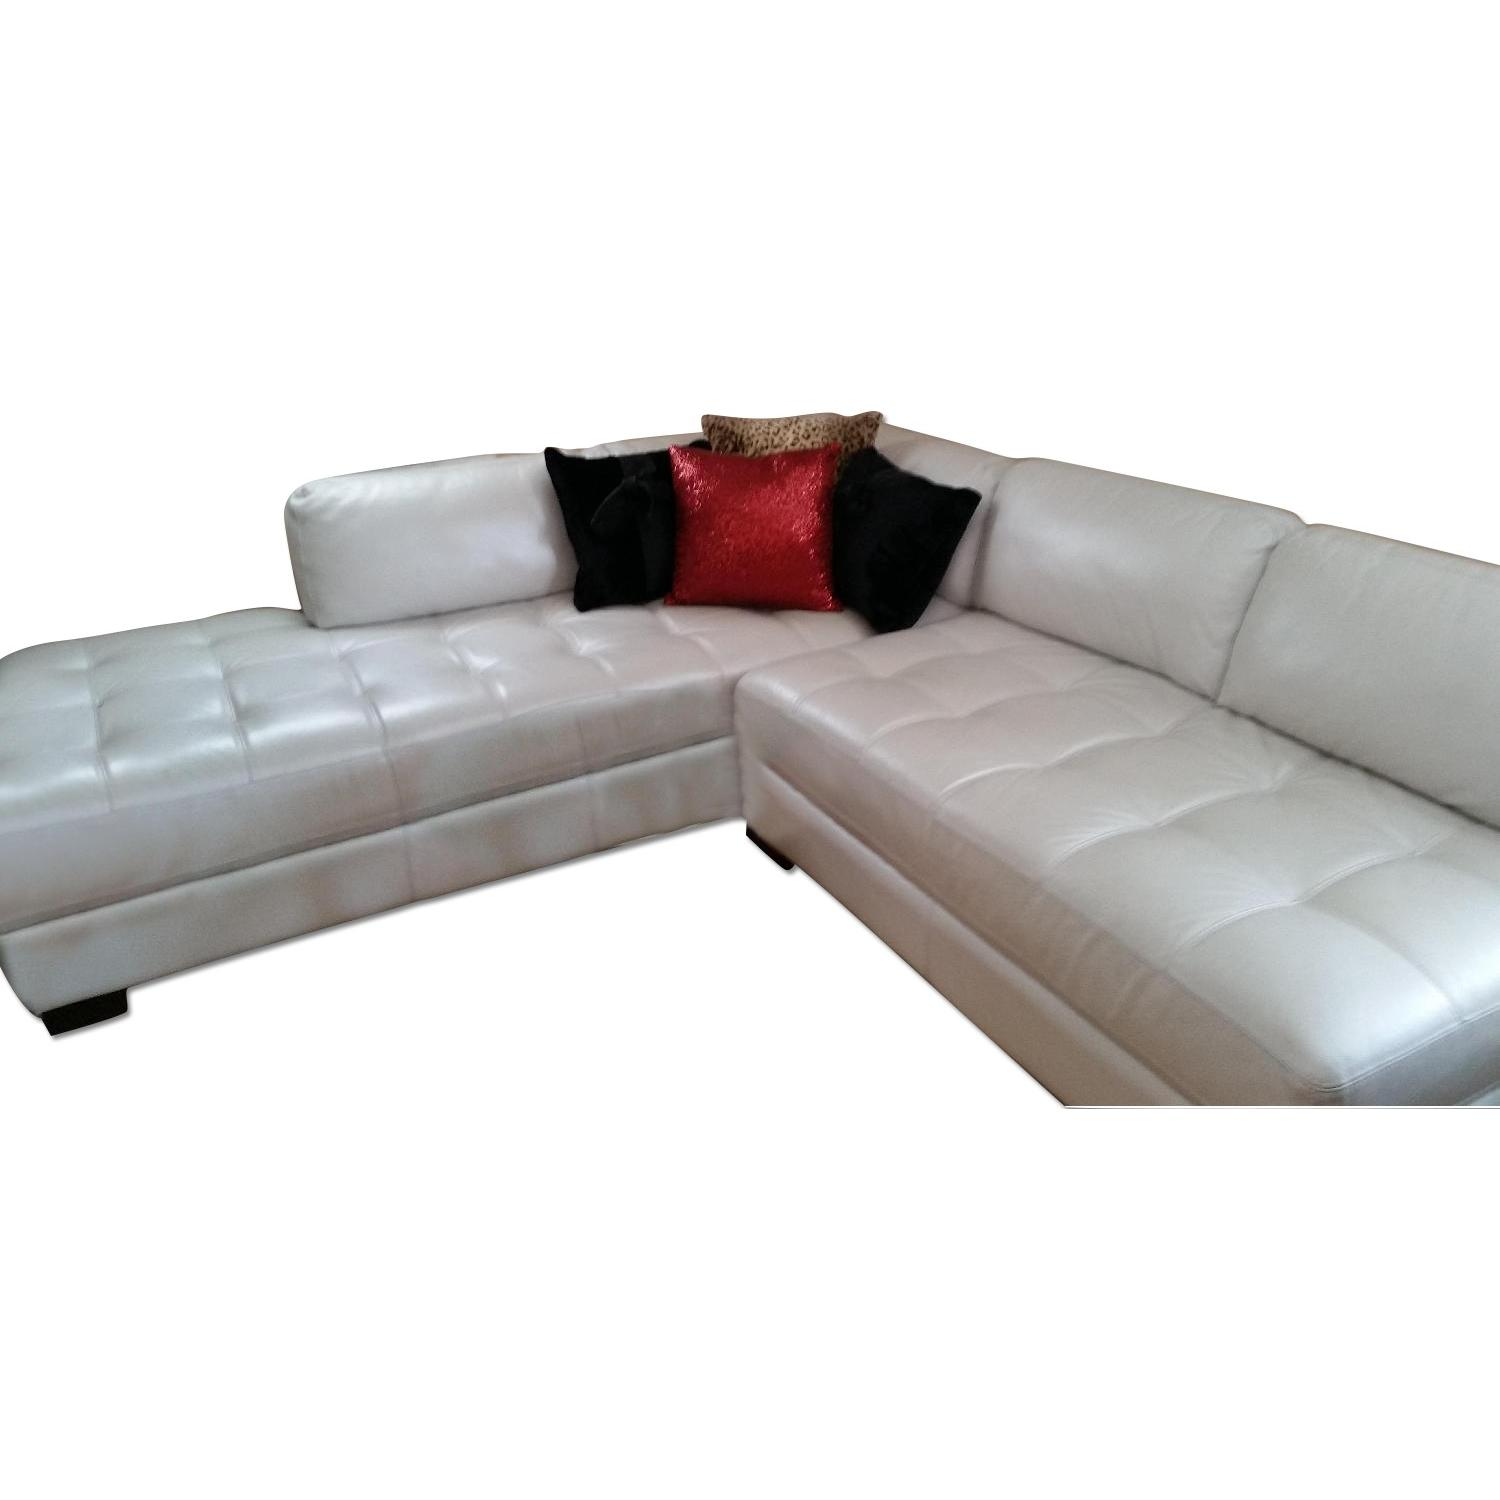 Chateau dAx Leather Sectional + Glass Table - image-0